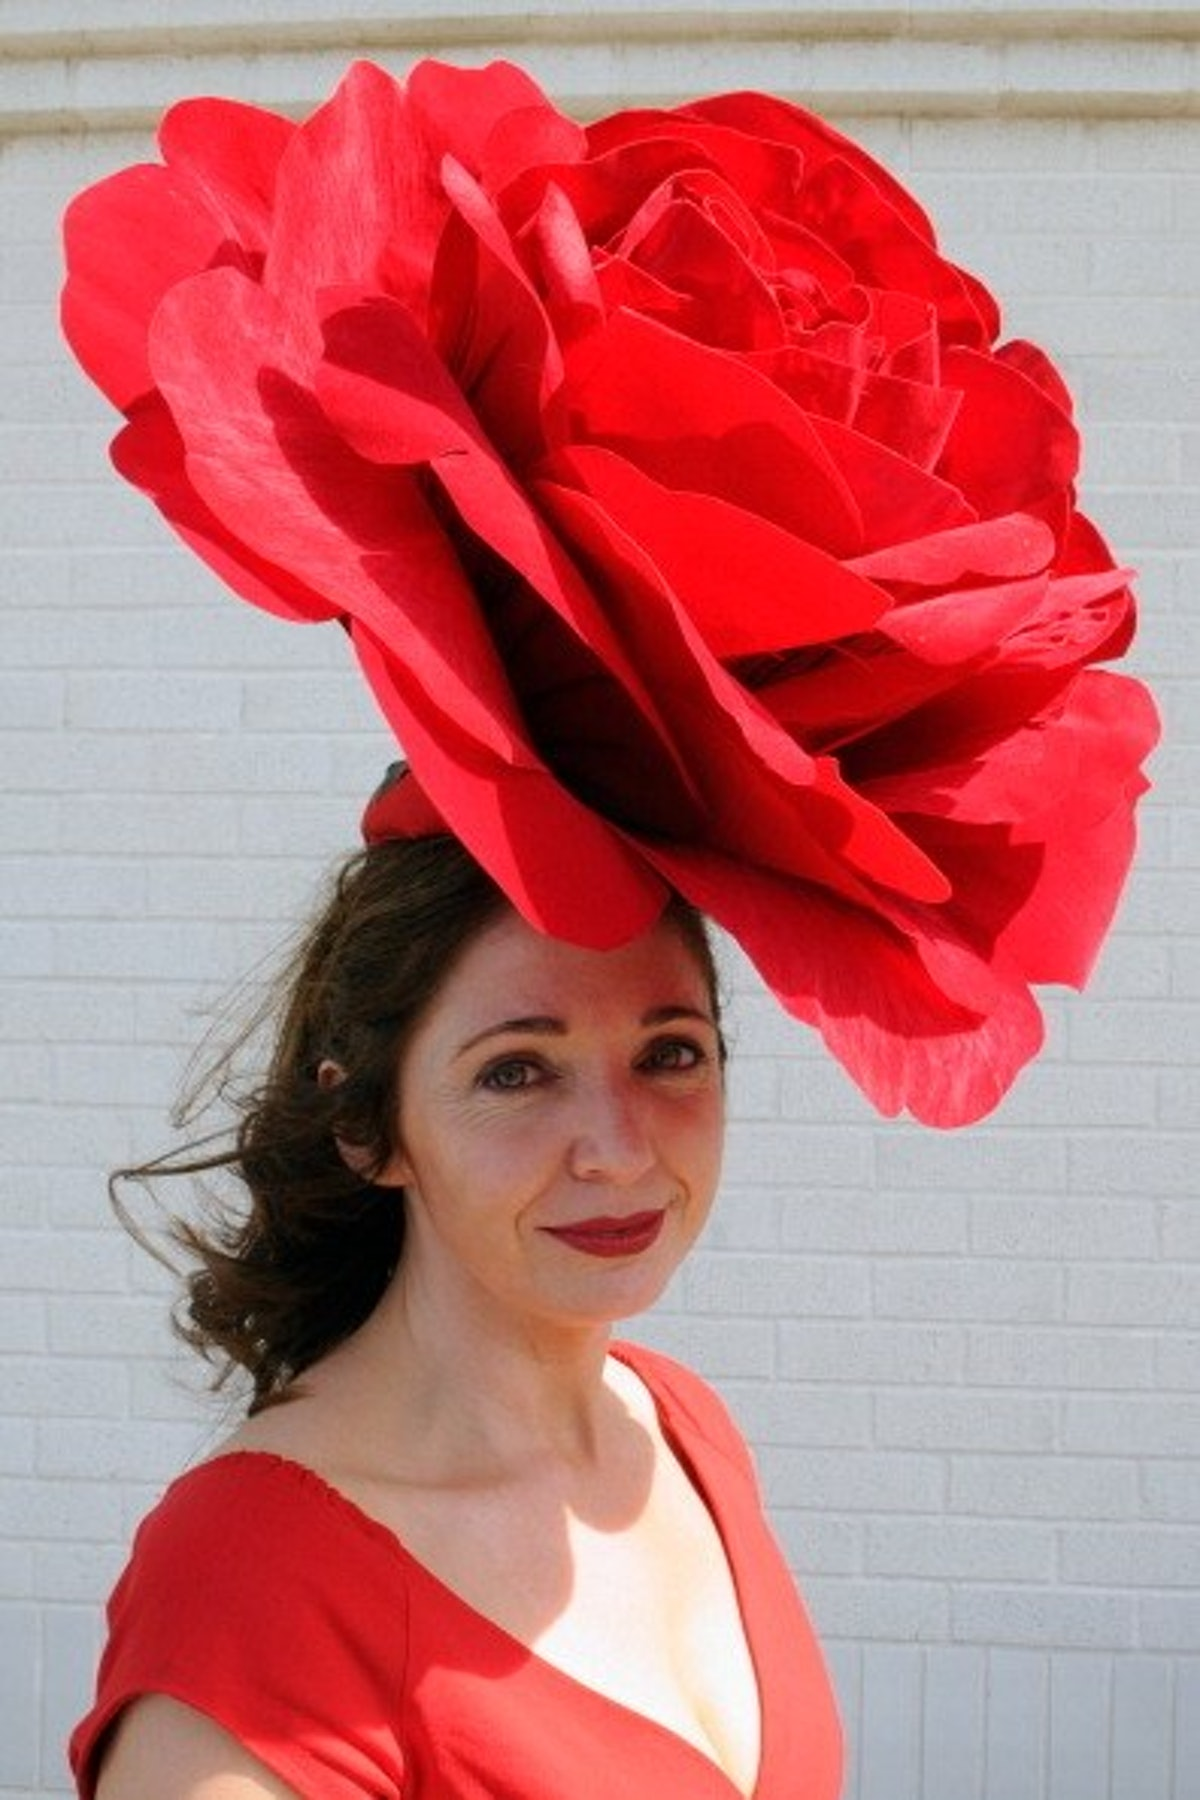 140th Kentucky Derby - Race Day Hat Highlights